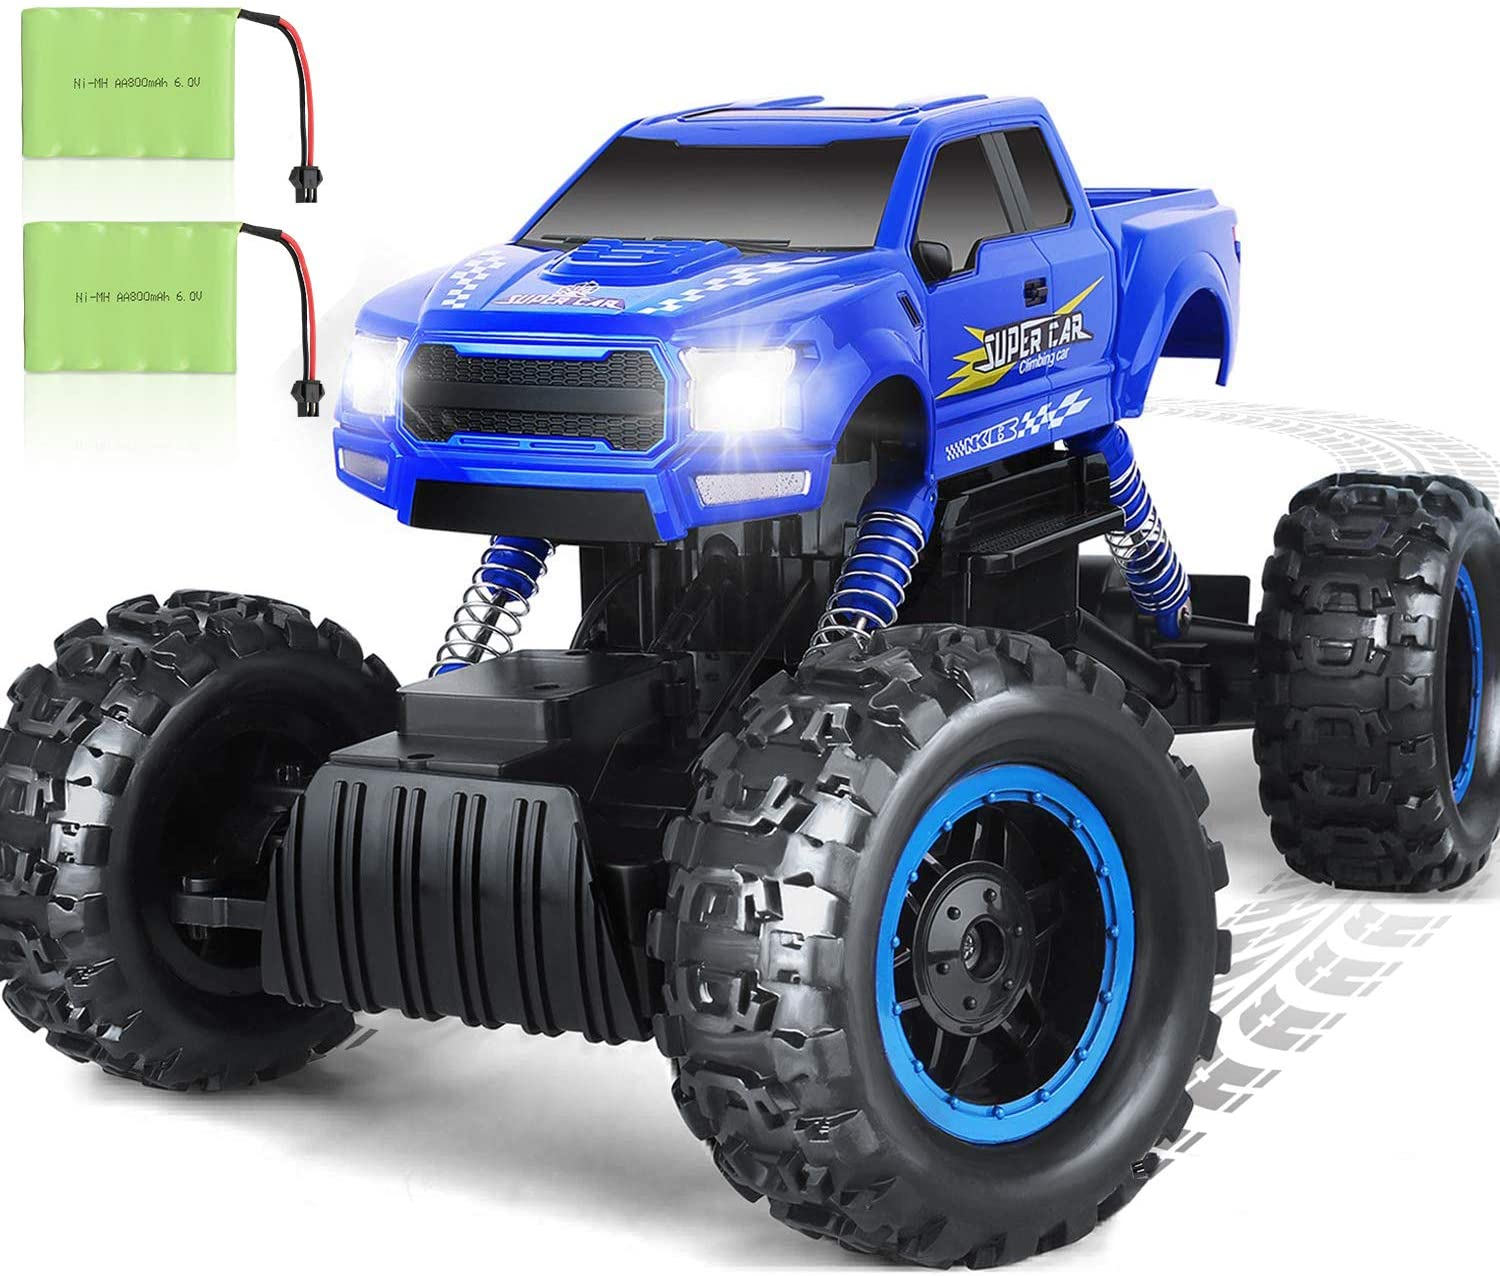 XRace Crawler DOUBLE E 1:12 RC Cars Monster Truck 4WD Dual Motors Rechargeable Off Road Remote Control Truck (Blue)